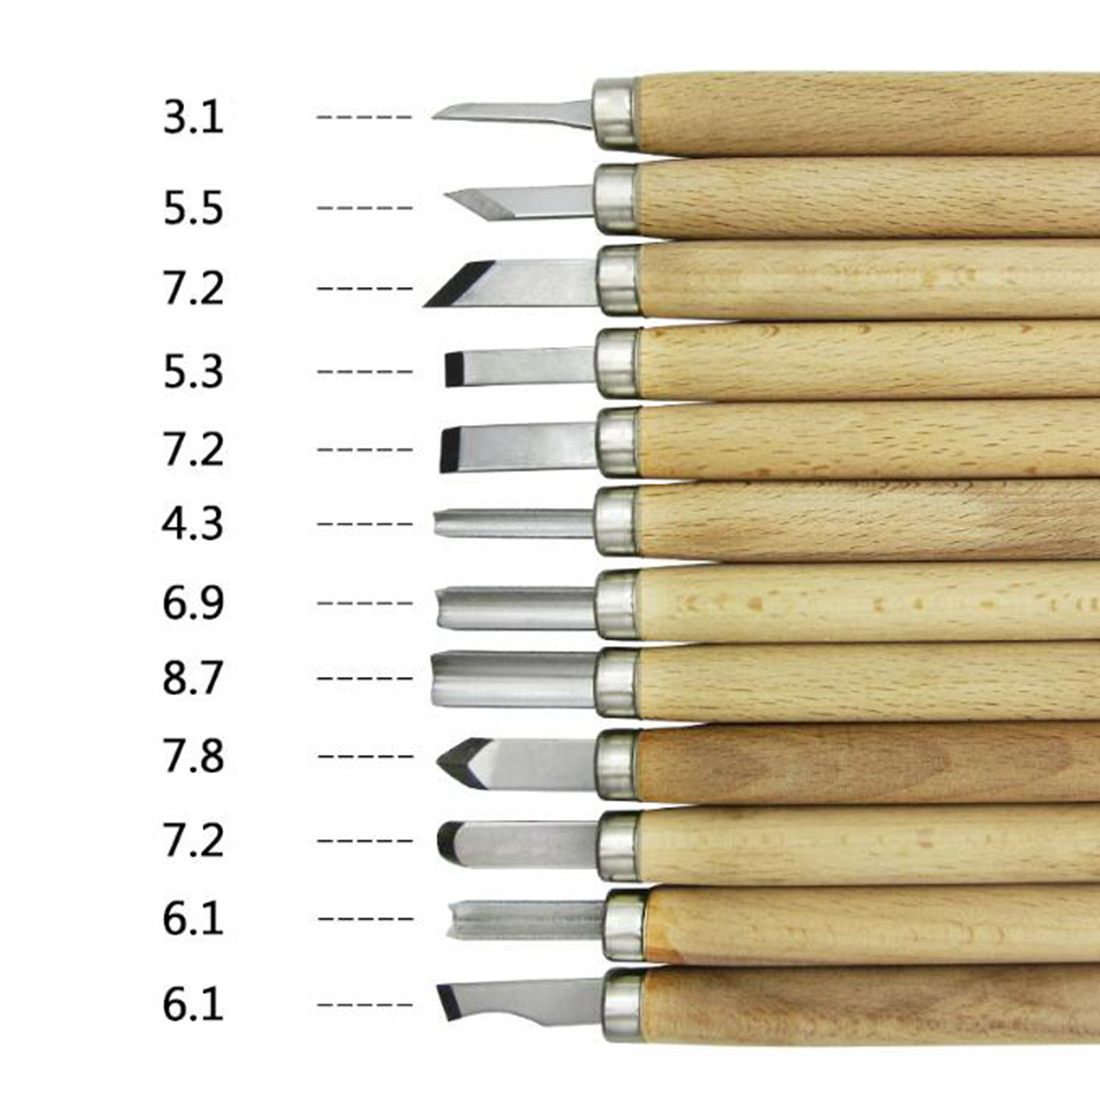 12pcs/set Hand Wood Carving Chisels Knife Tool for Basic Woodcut Working Clay Wax DIY Tools and Detailed Woodworking Hand Tools